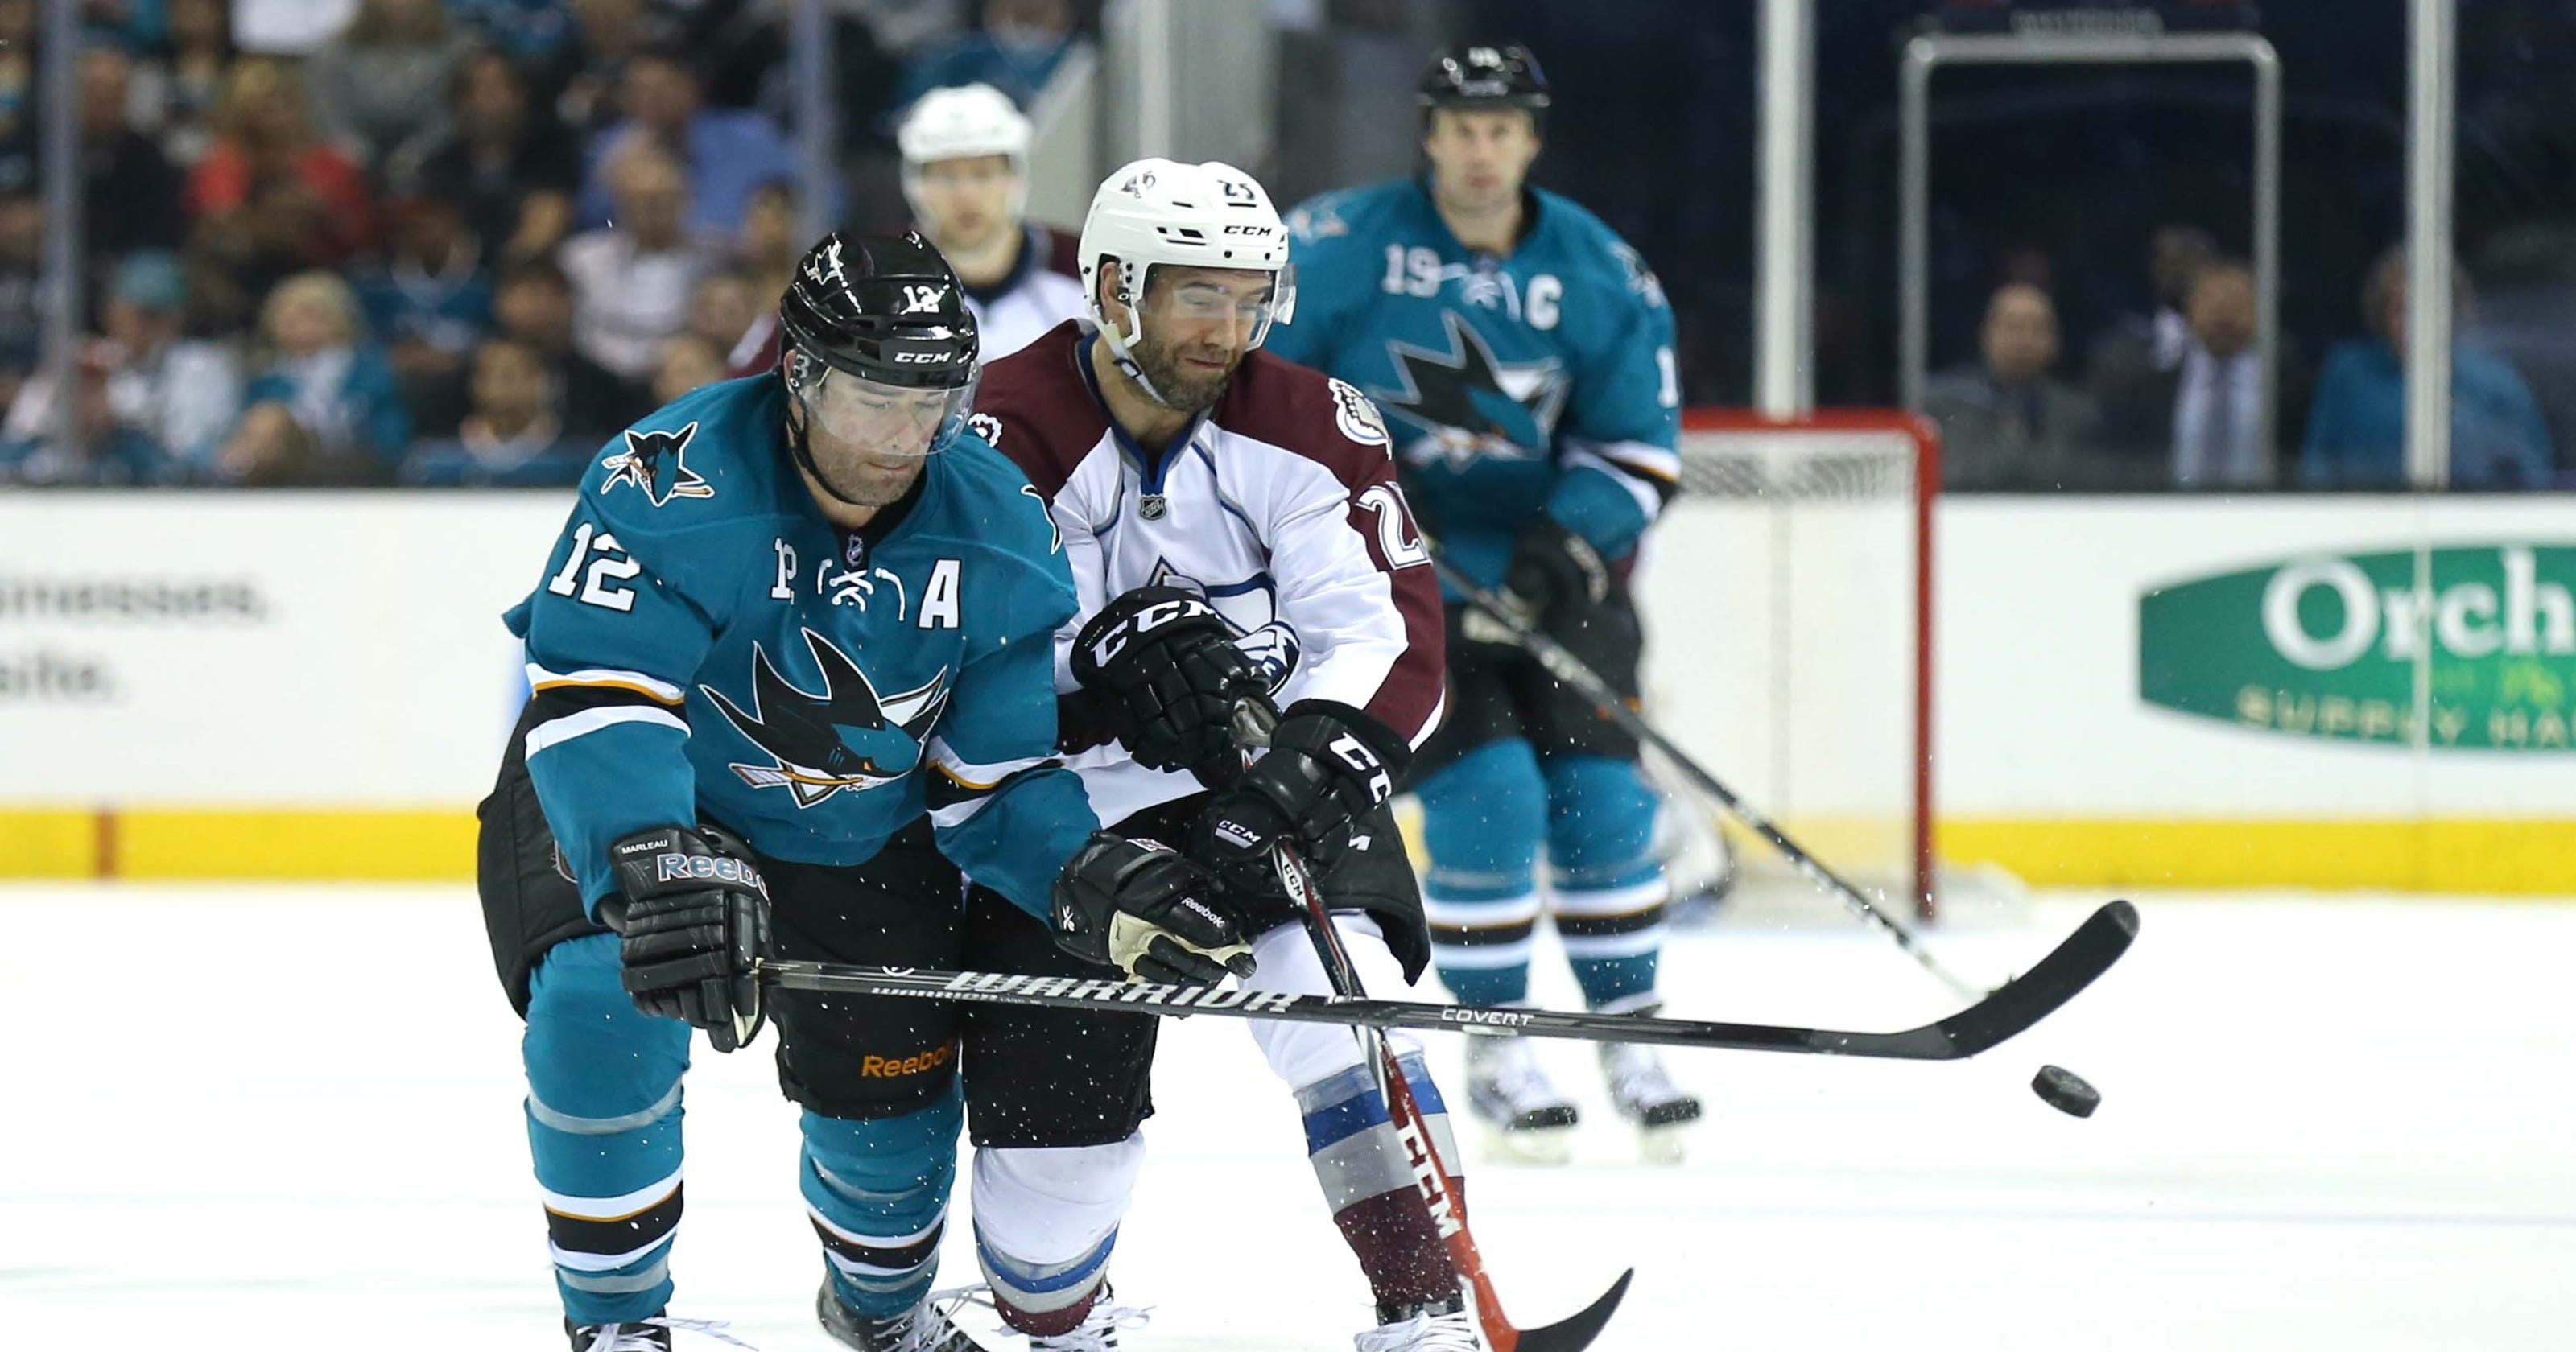 1b8b41d67bb Havlat scores hat trick in Sharks rout of Avalanche